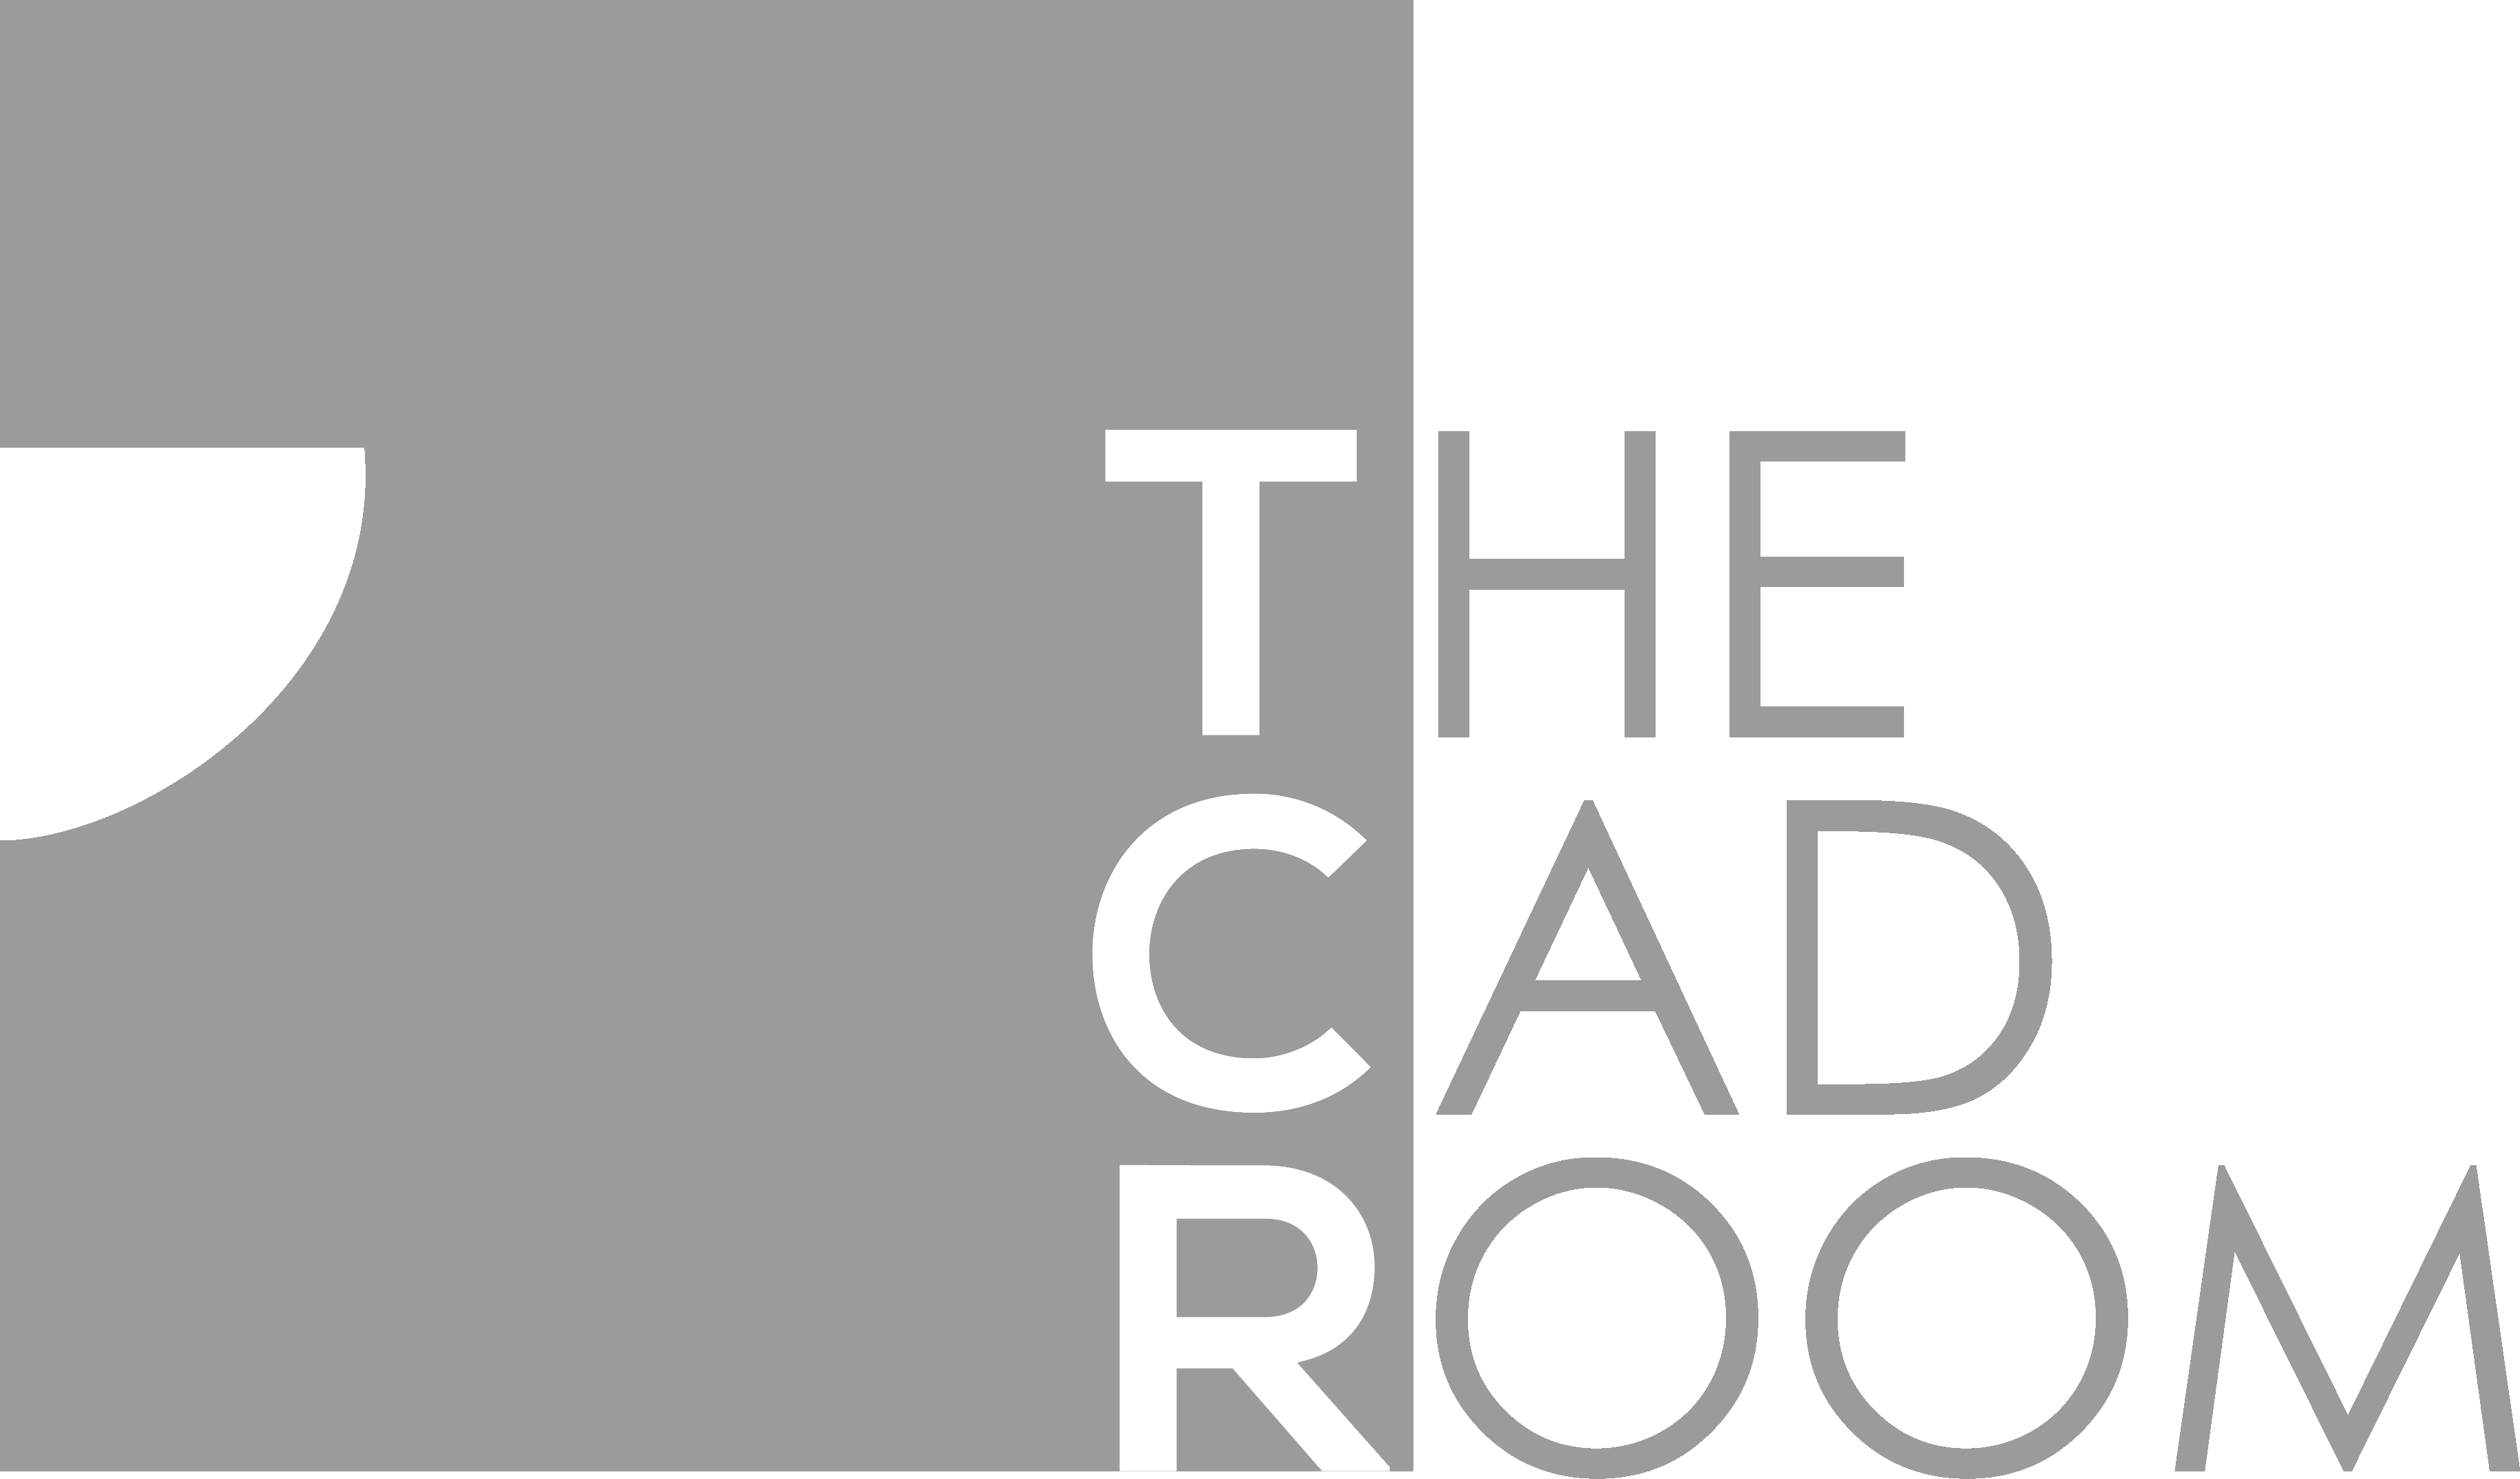 The CAD Room logo grey